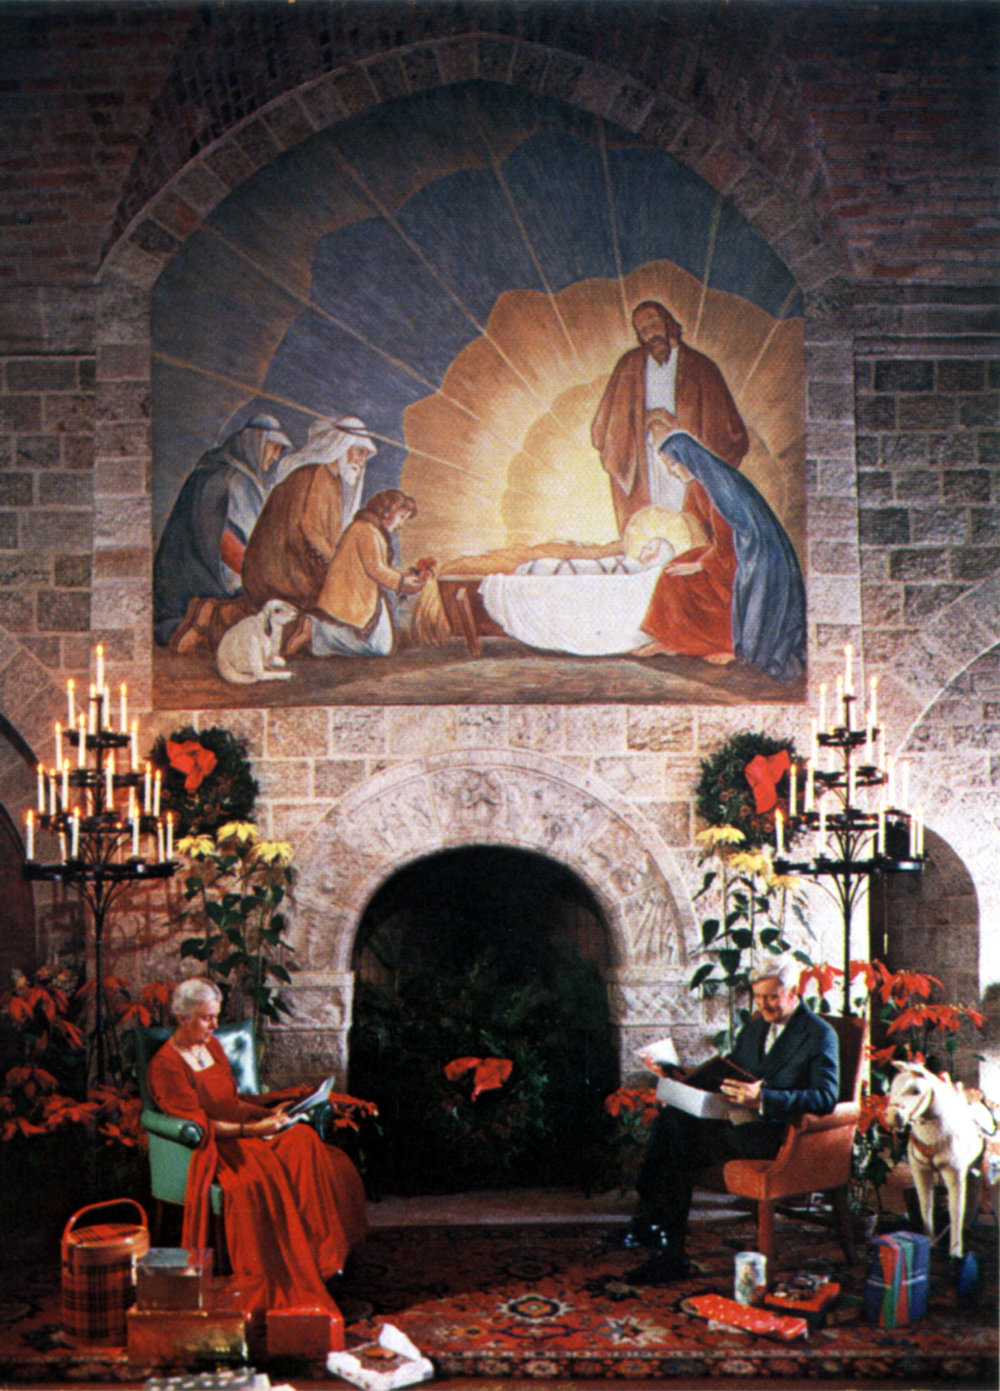 Raymond and Mildred Pitcairn in Glencairn's Upper Hall, posing for their 1954 Christmas card.